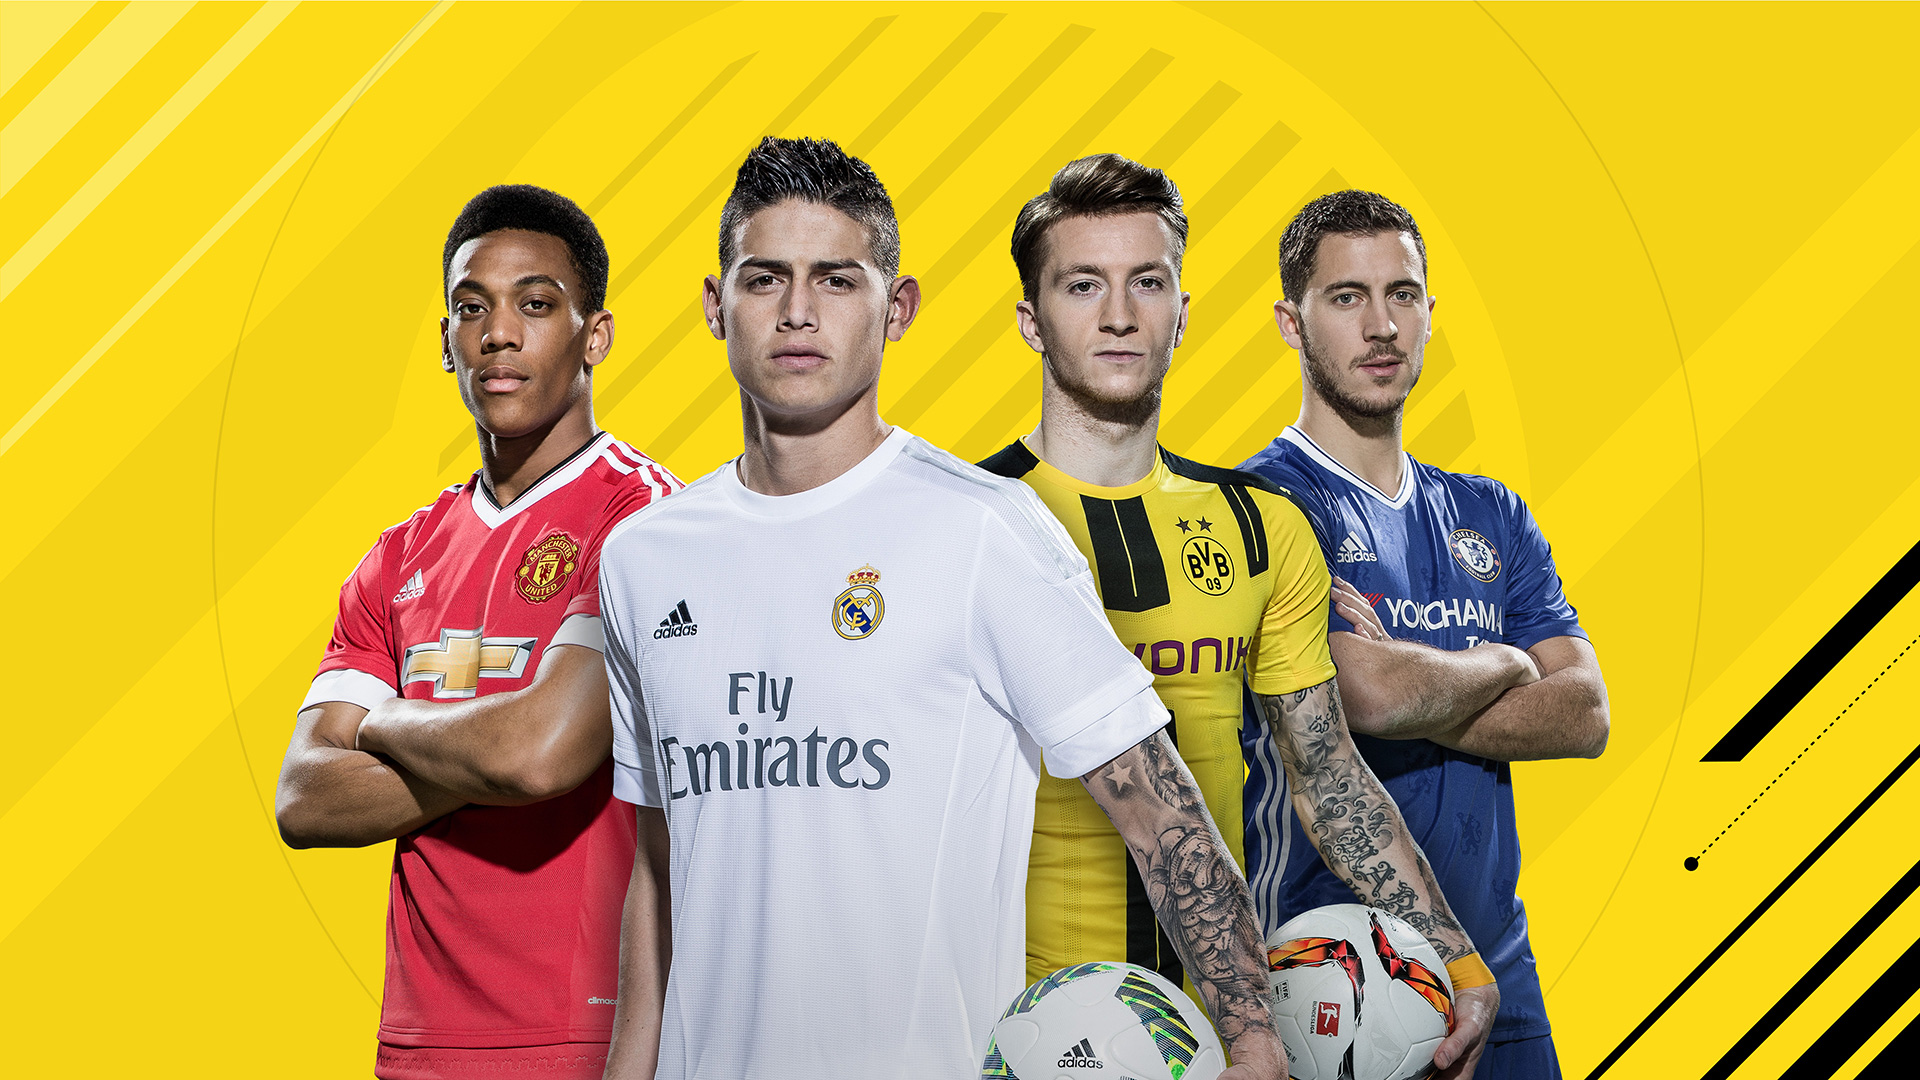 FIFA 17, HD Games, 4k Wallpapers, Images, Backgrounds, Photos and Pictures